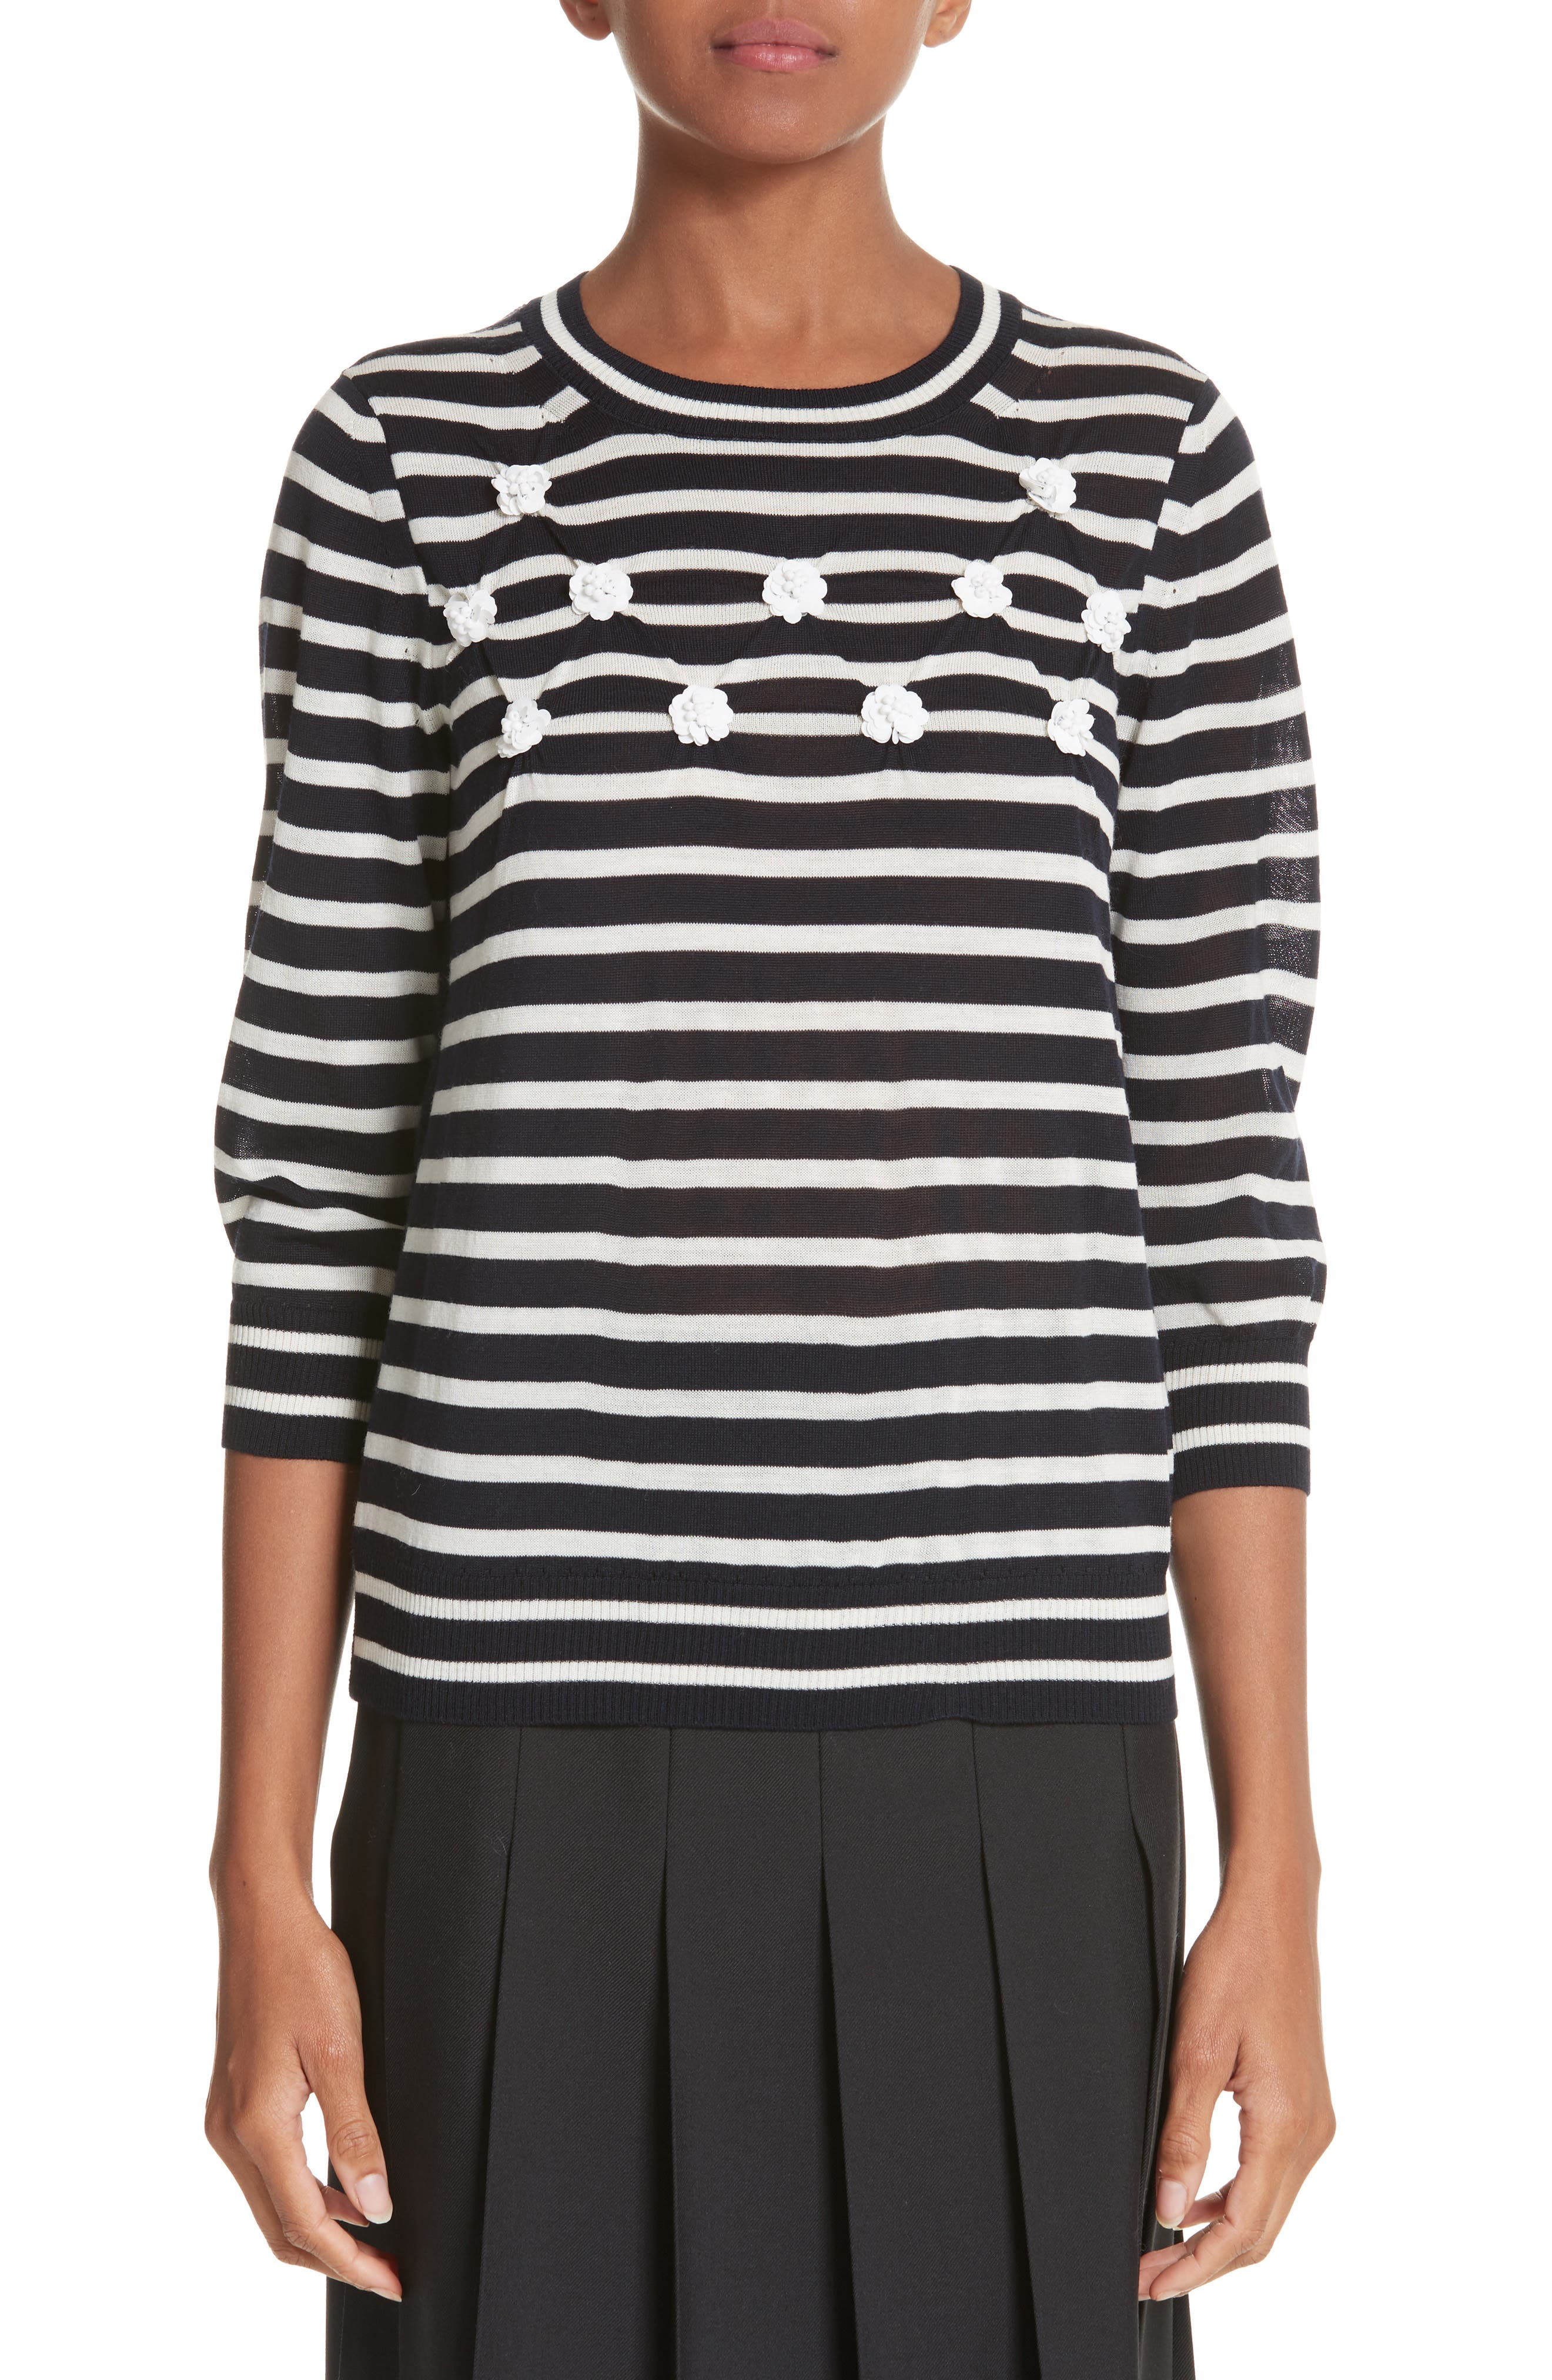 Main Image - Tricot Comme des Garçons Button Back Stripe Sweater